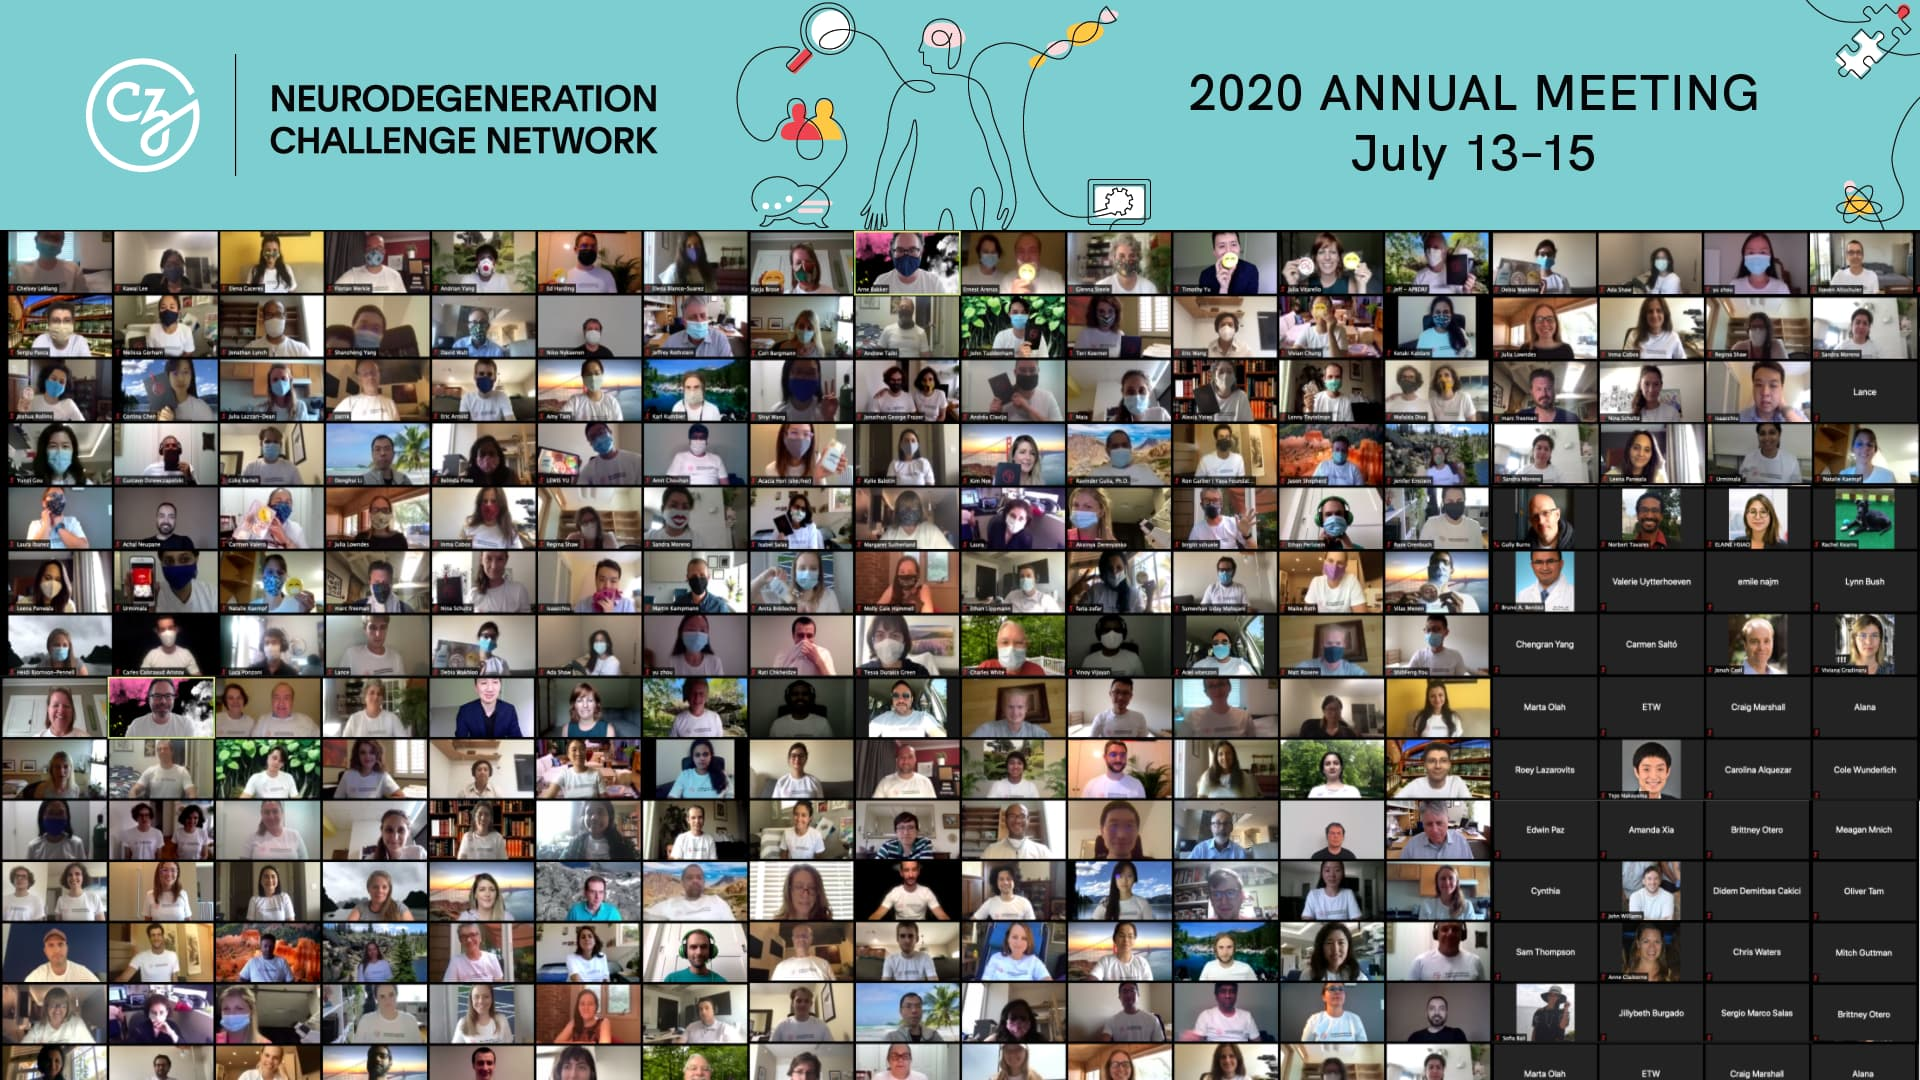 A collage of Zoom screenshots shows over 250 meeting attendees of the CZI Neurodegeneration Challenge Network Annual Meeting.